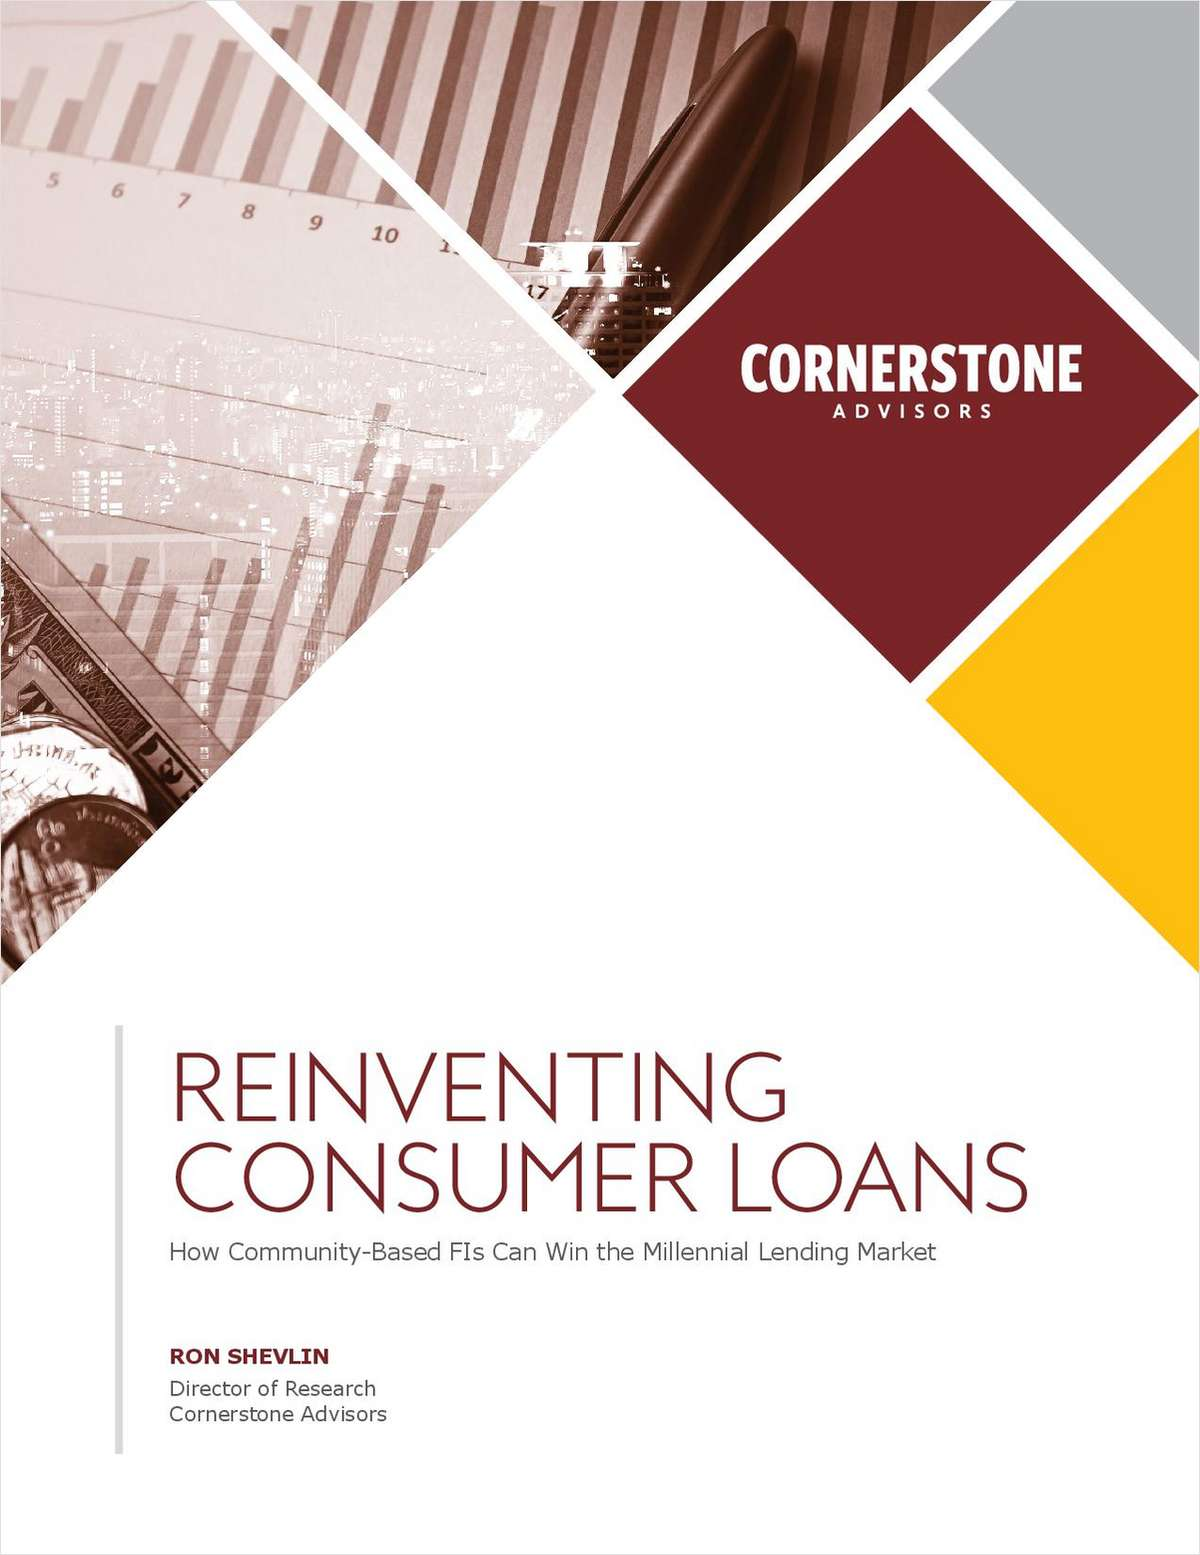 Reinventing Consumer Loans: How Community-Based FIs Can Win the Millennial Lending Market